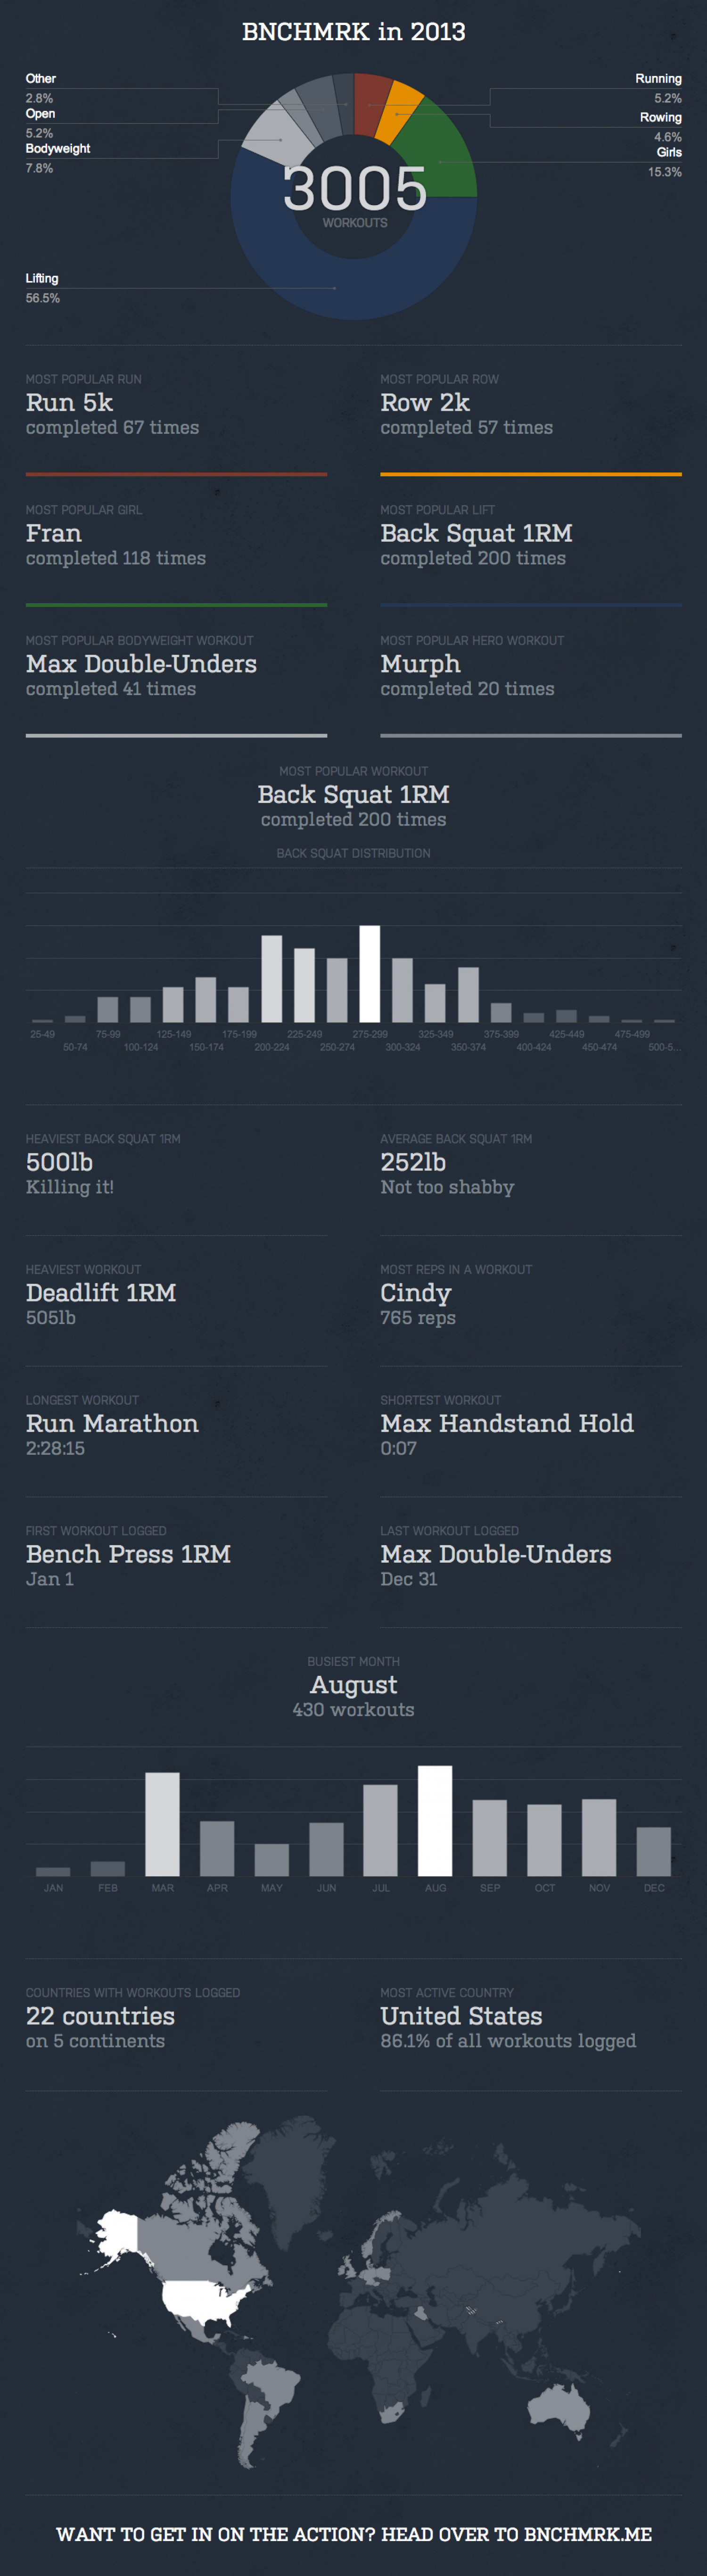 BNCHMRK in 2013 Infographic